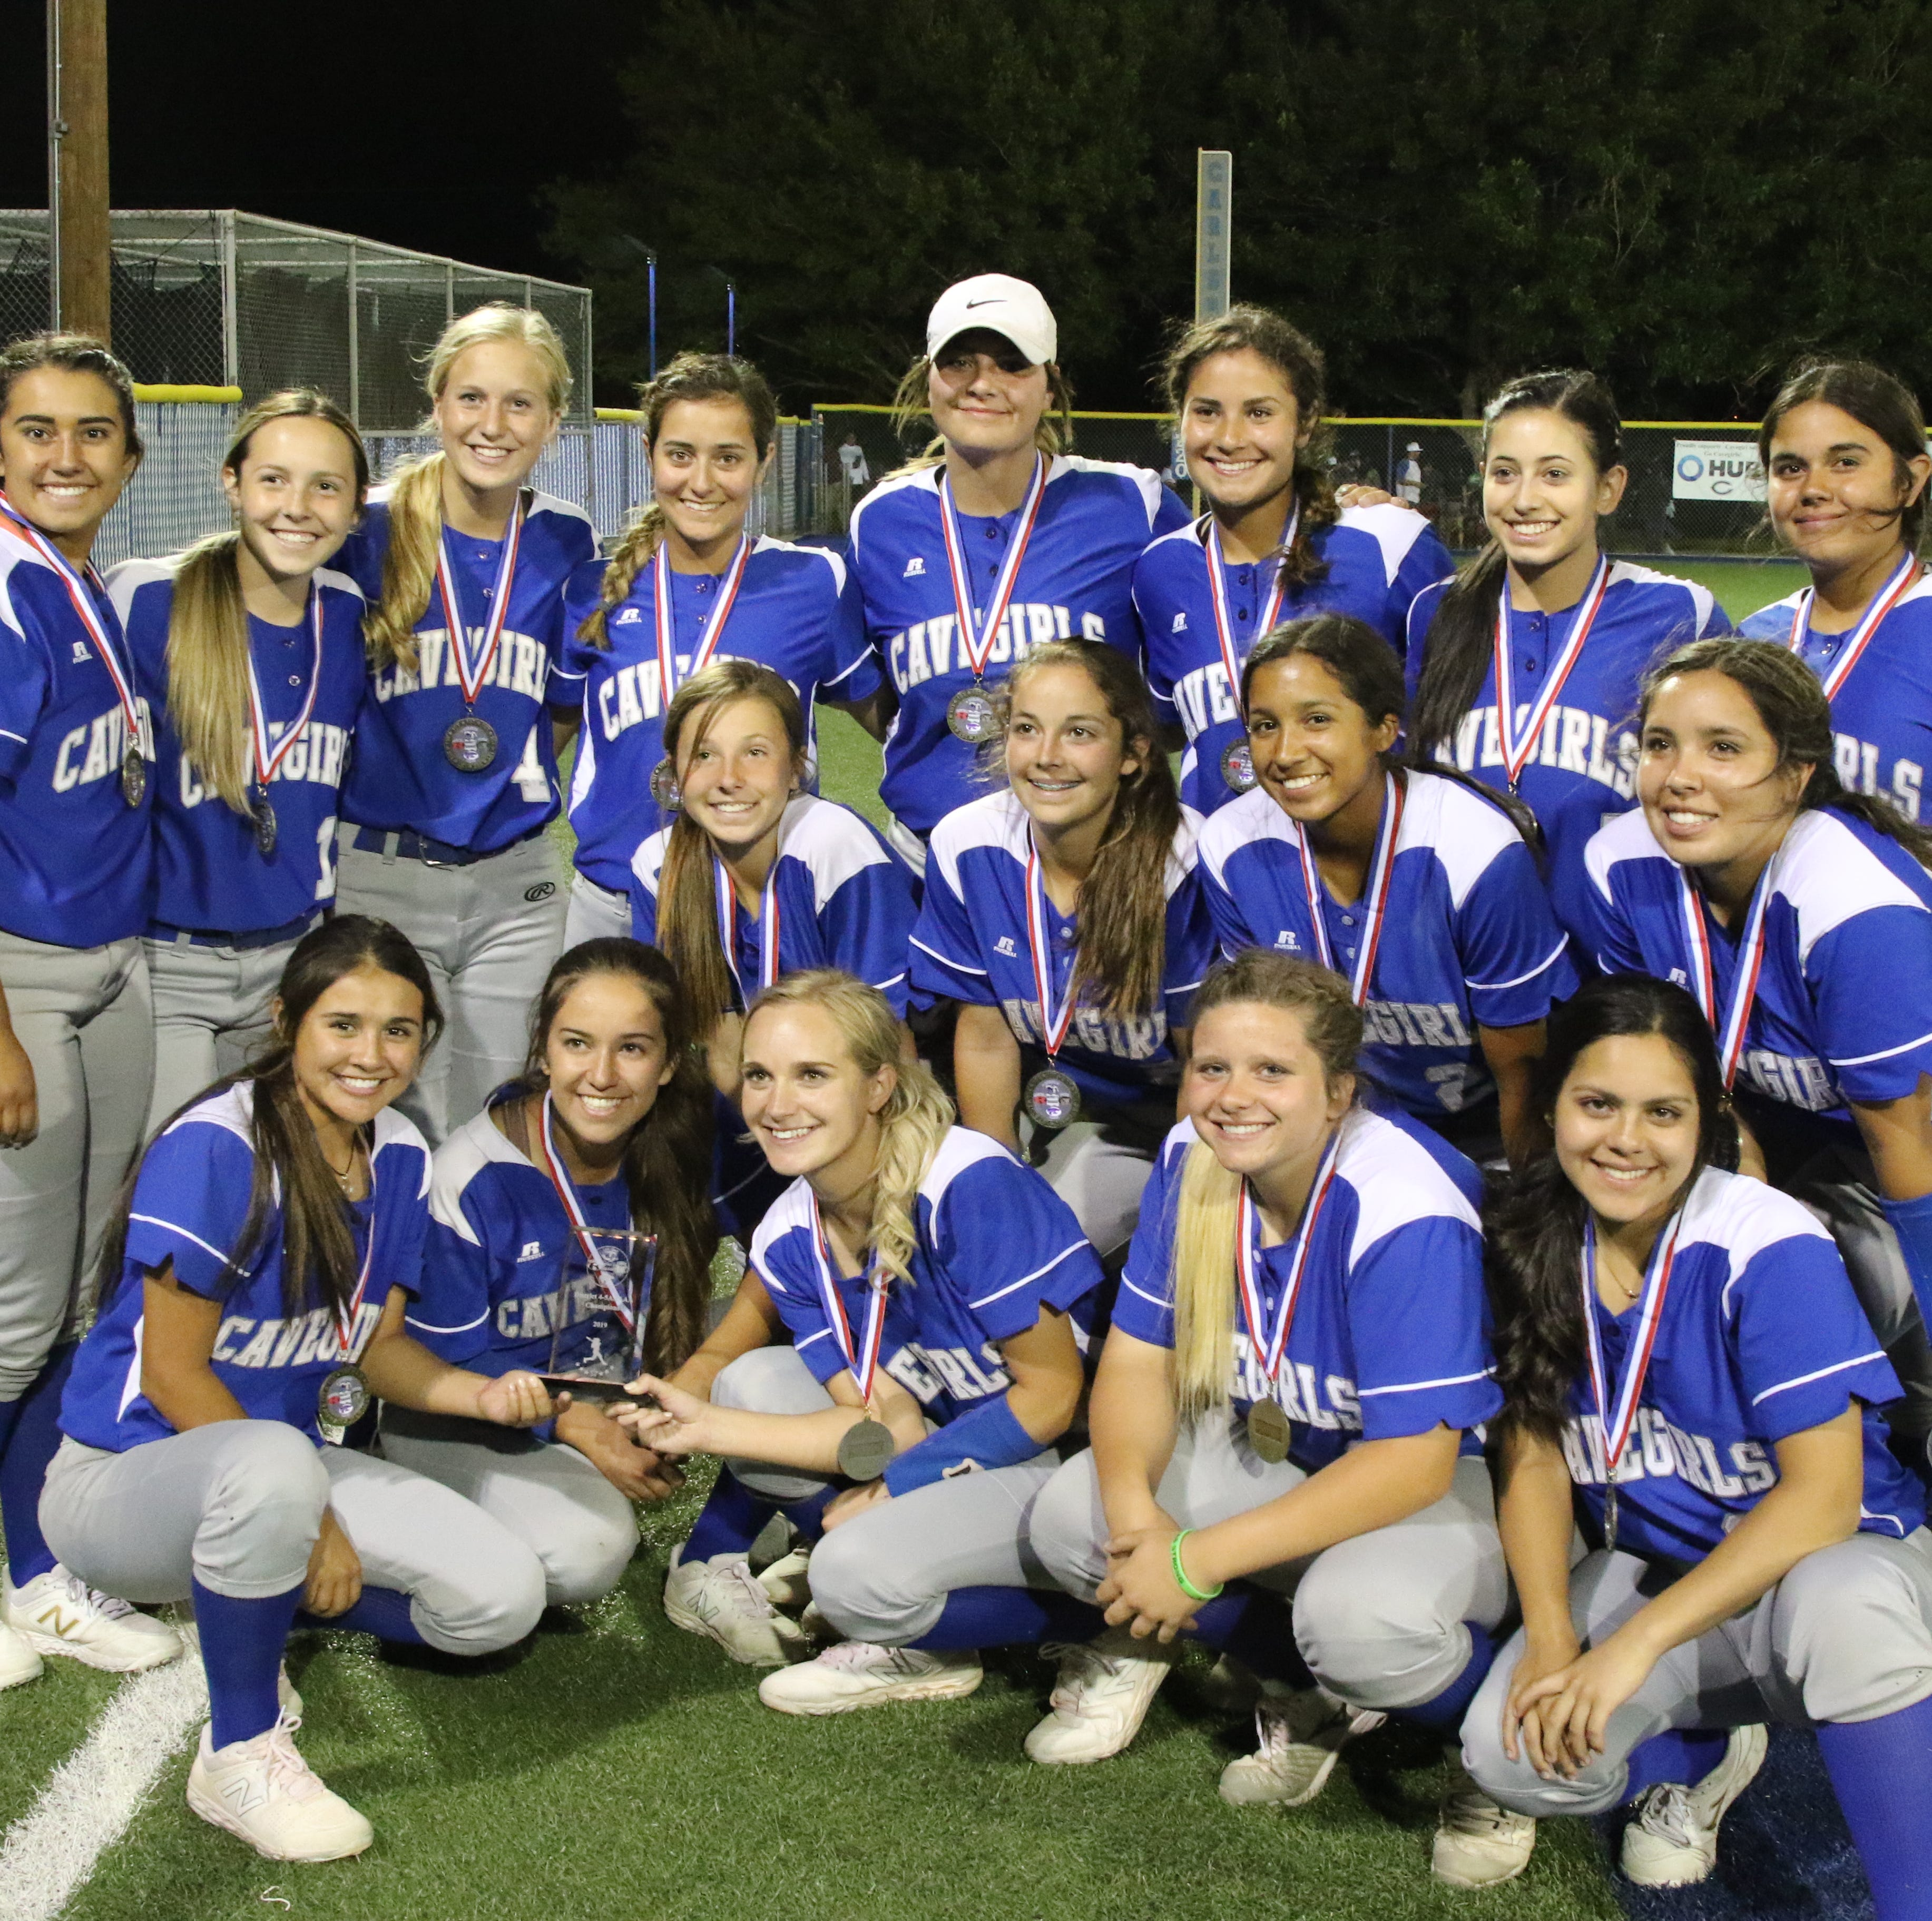 All six Eddy County teams heading to state tournament